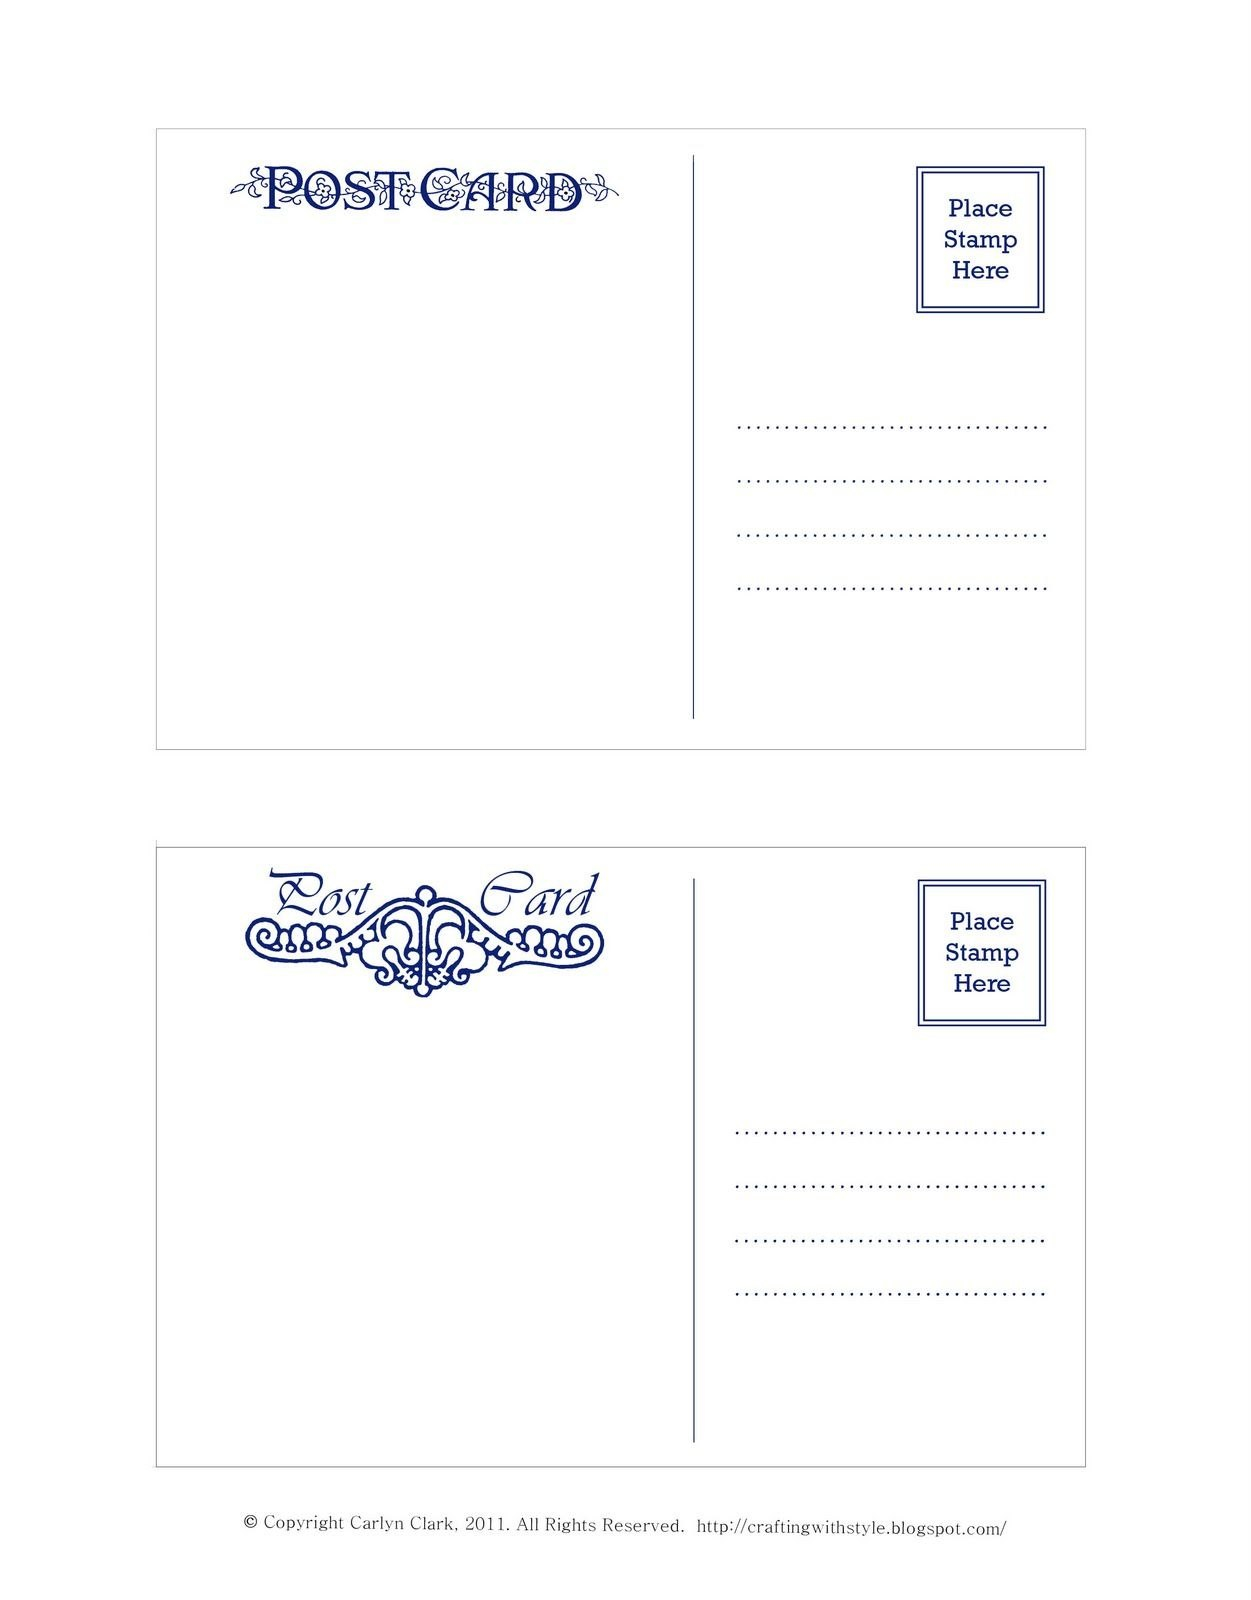 Crafting With Style Free Postcard Templates  Postcards  Postcard With Regard To Post Cards Template